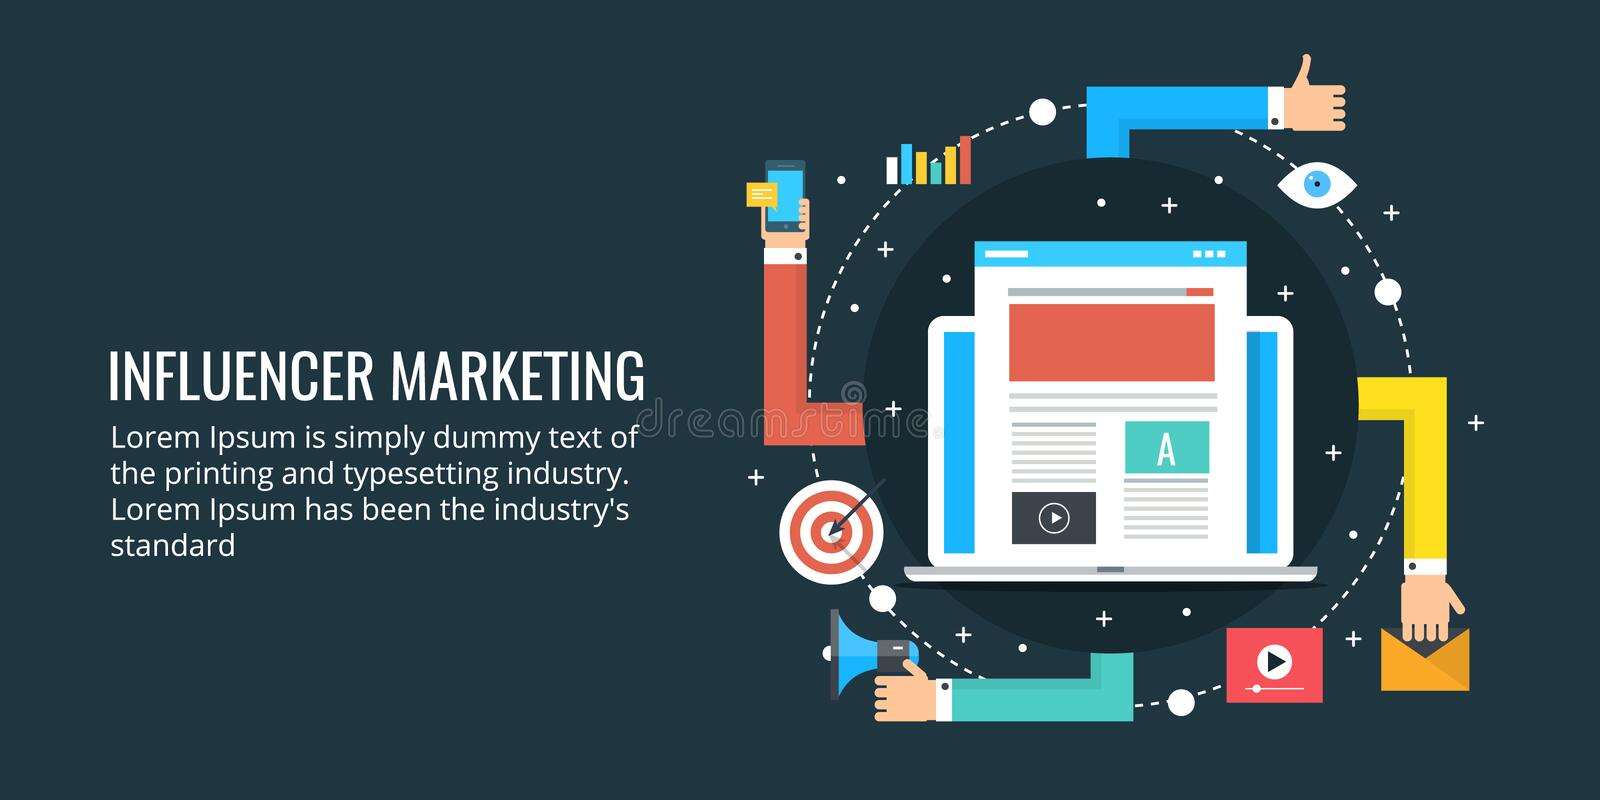 Influencer marketing strategy - social media and blogging concept. Concept of influencer marketing, Blog content promotion via social media strategy. Flat vector illustration